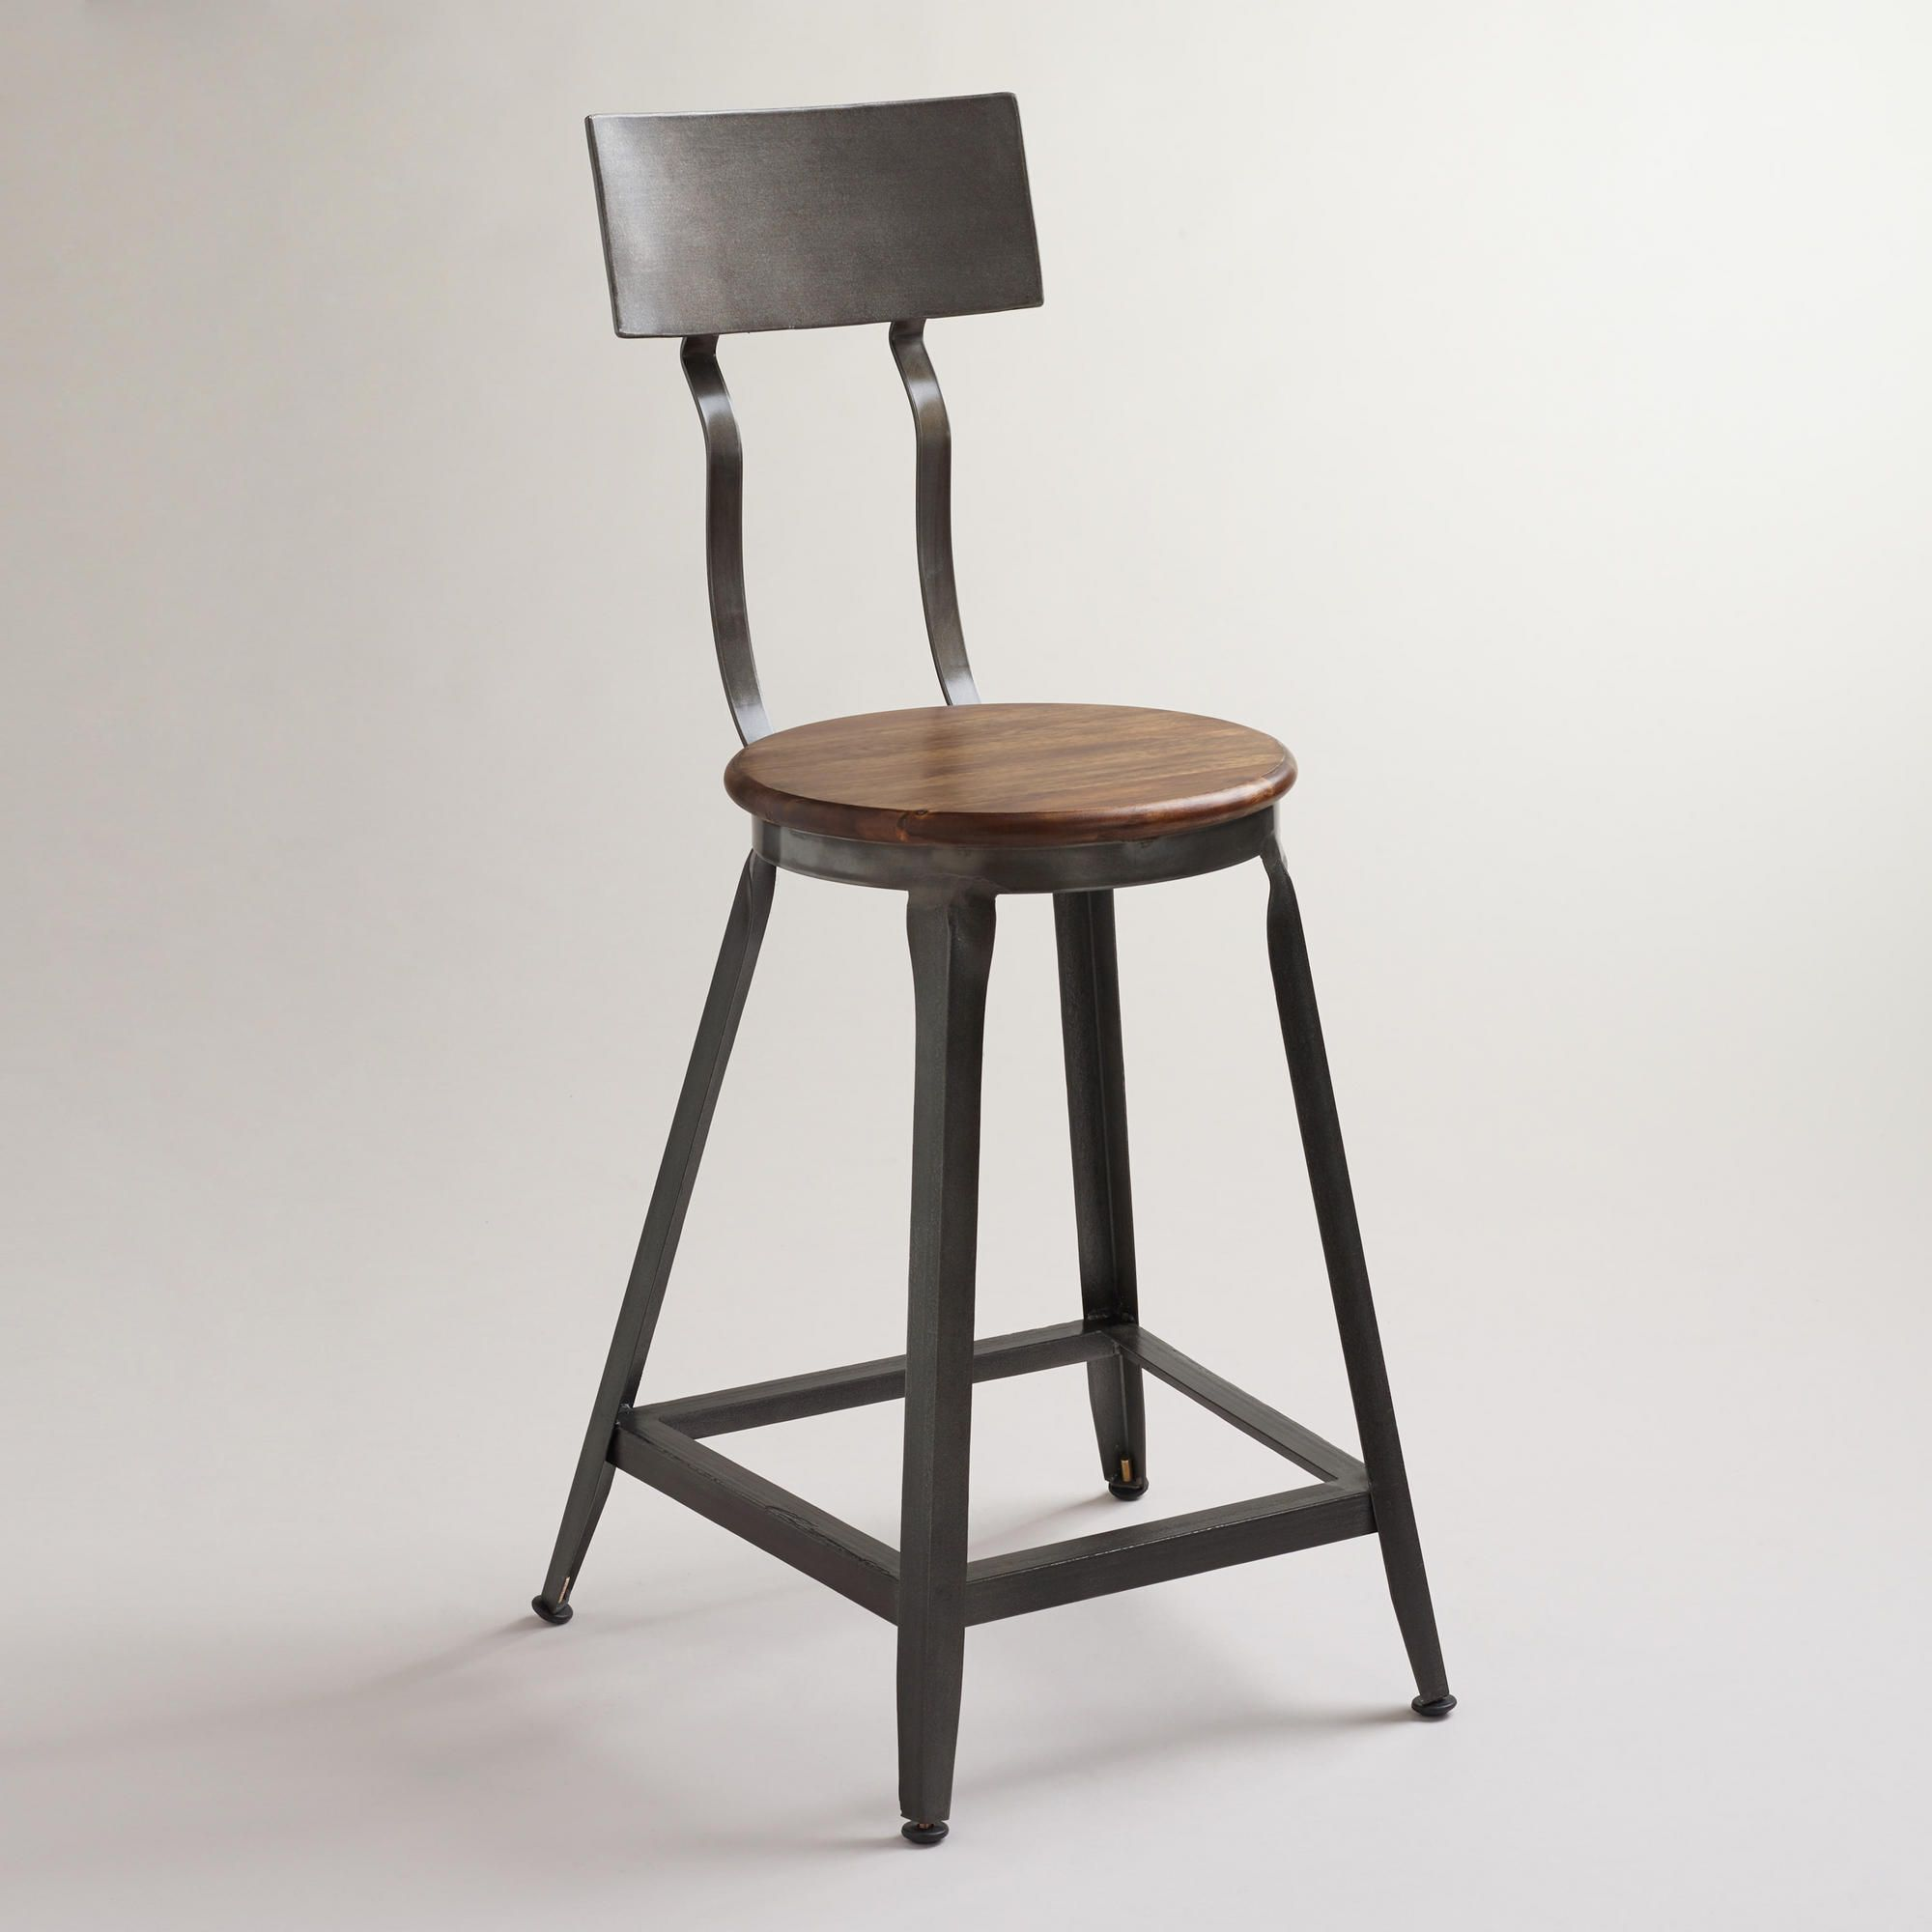 seat manhattan kitchen bar and no back beige wooden stools legs stool backs lyon with steel